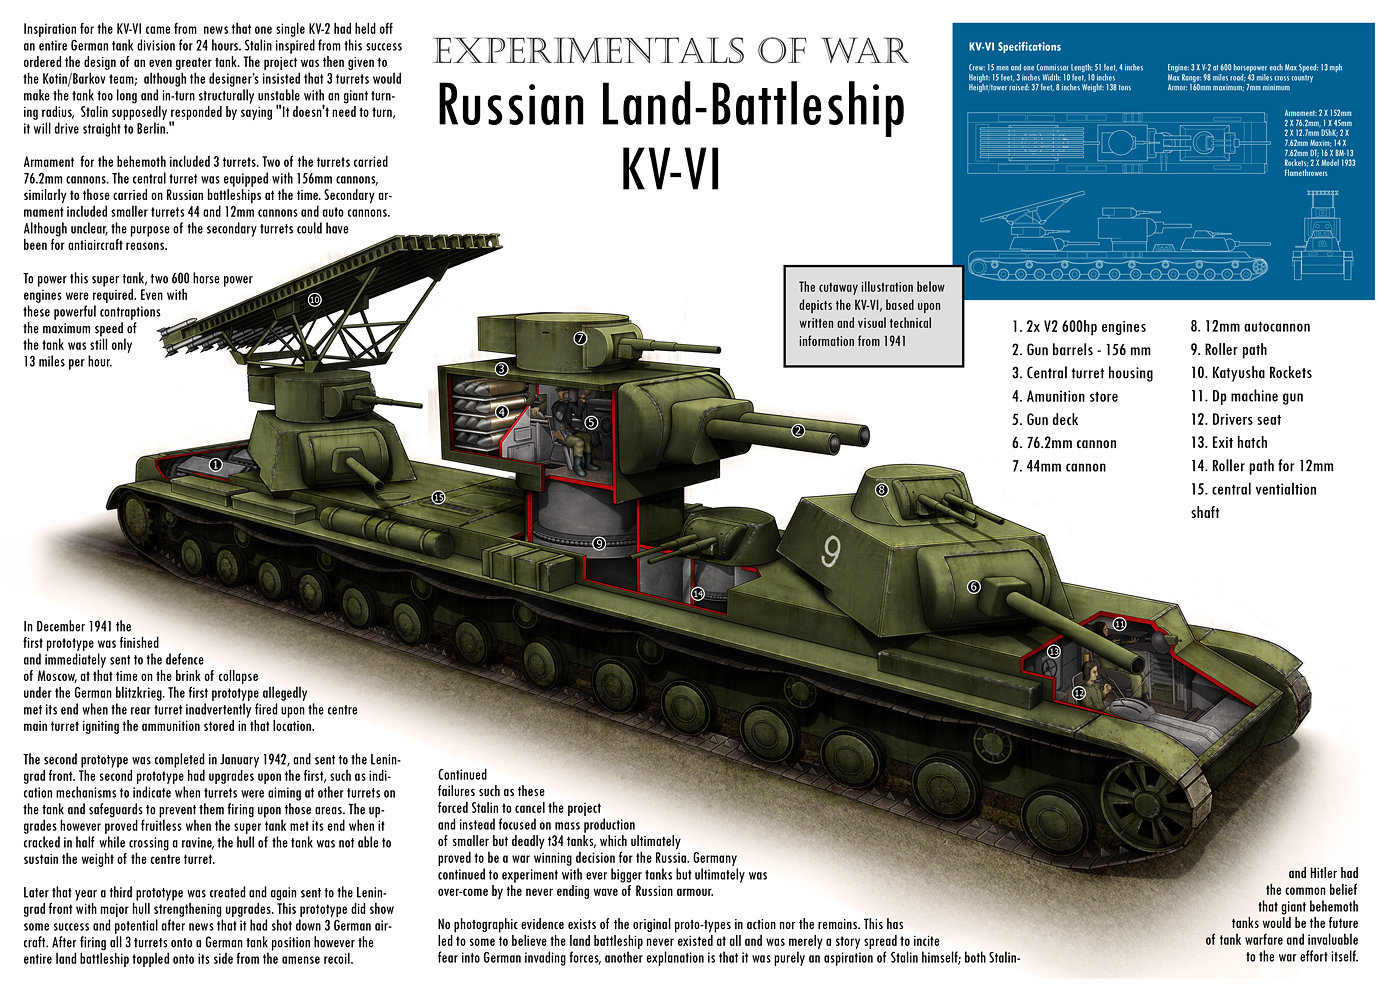 Russian Land-Battleship KV-VI